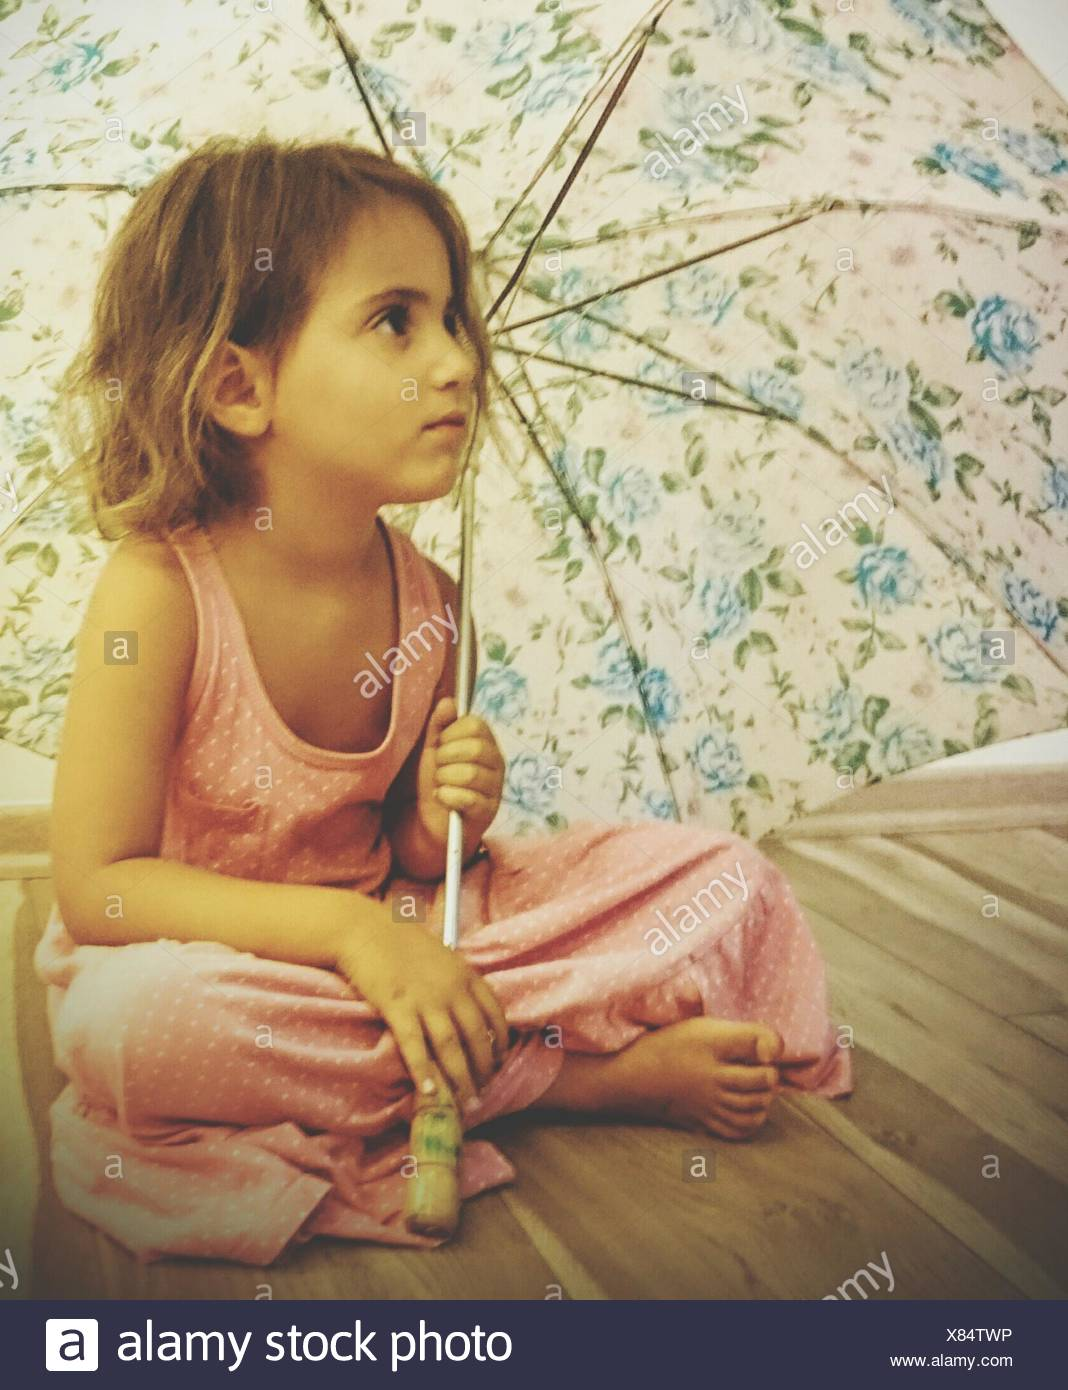 Close-Up Of Girl Holding Umbrella While Sitting On Bed At Home - Stock Image